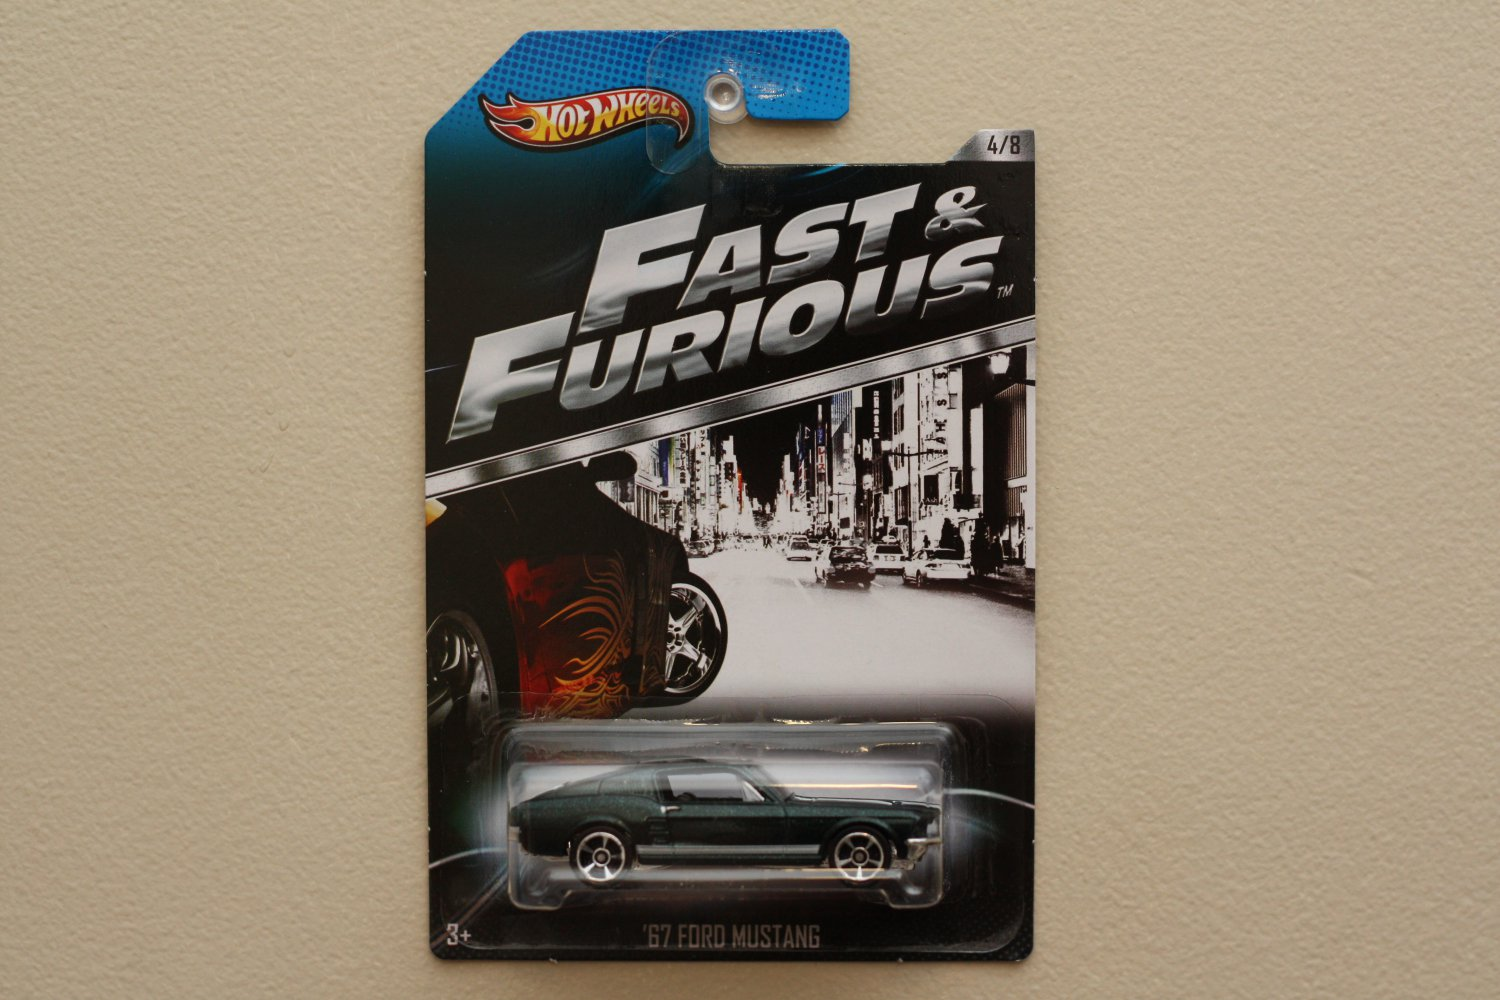 Hot Wheels 2013 Fast & Furious '67 Ford Mustang